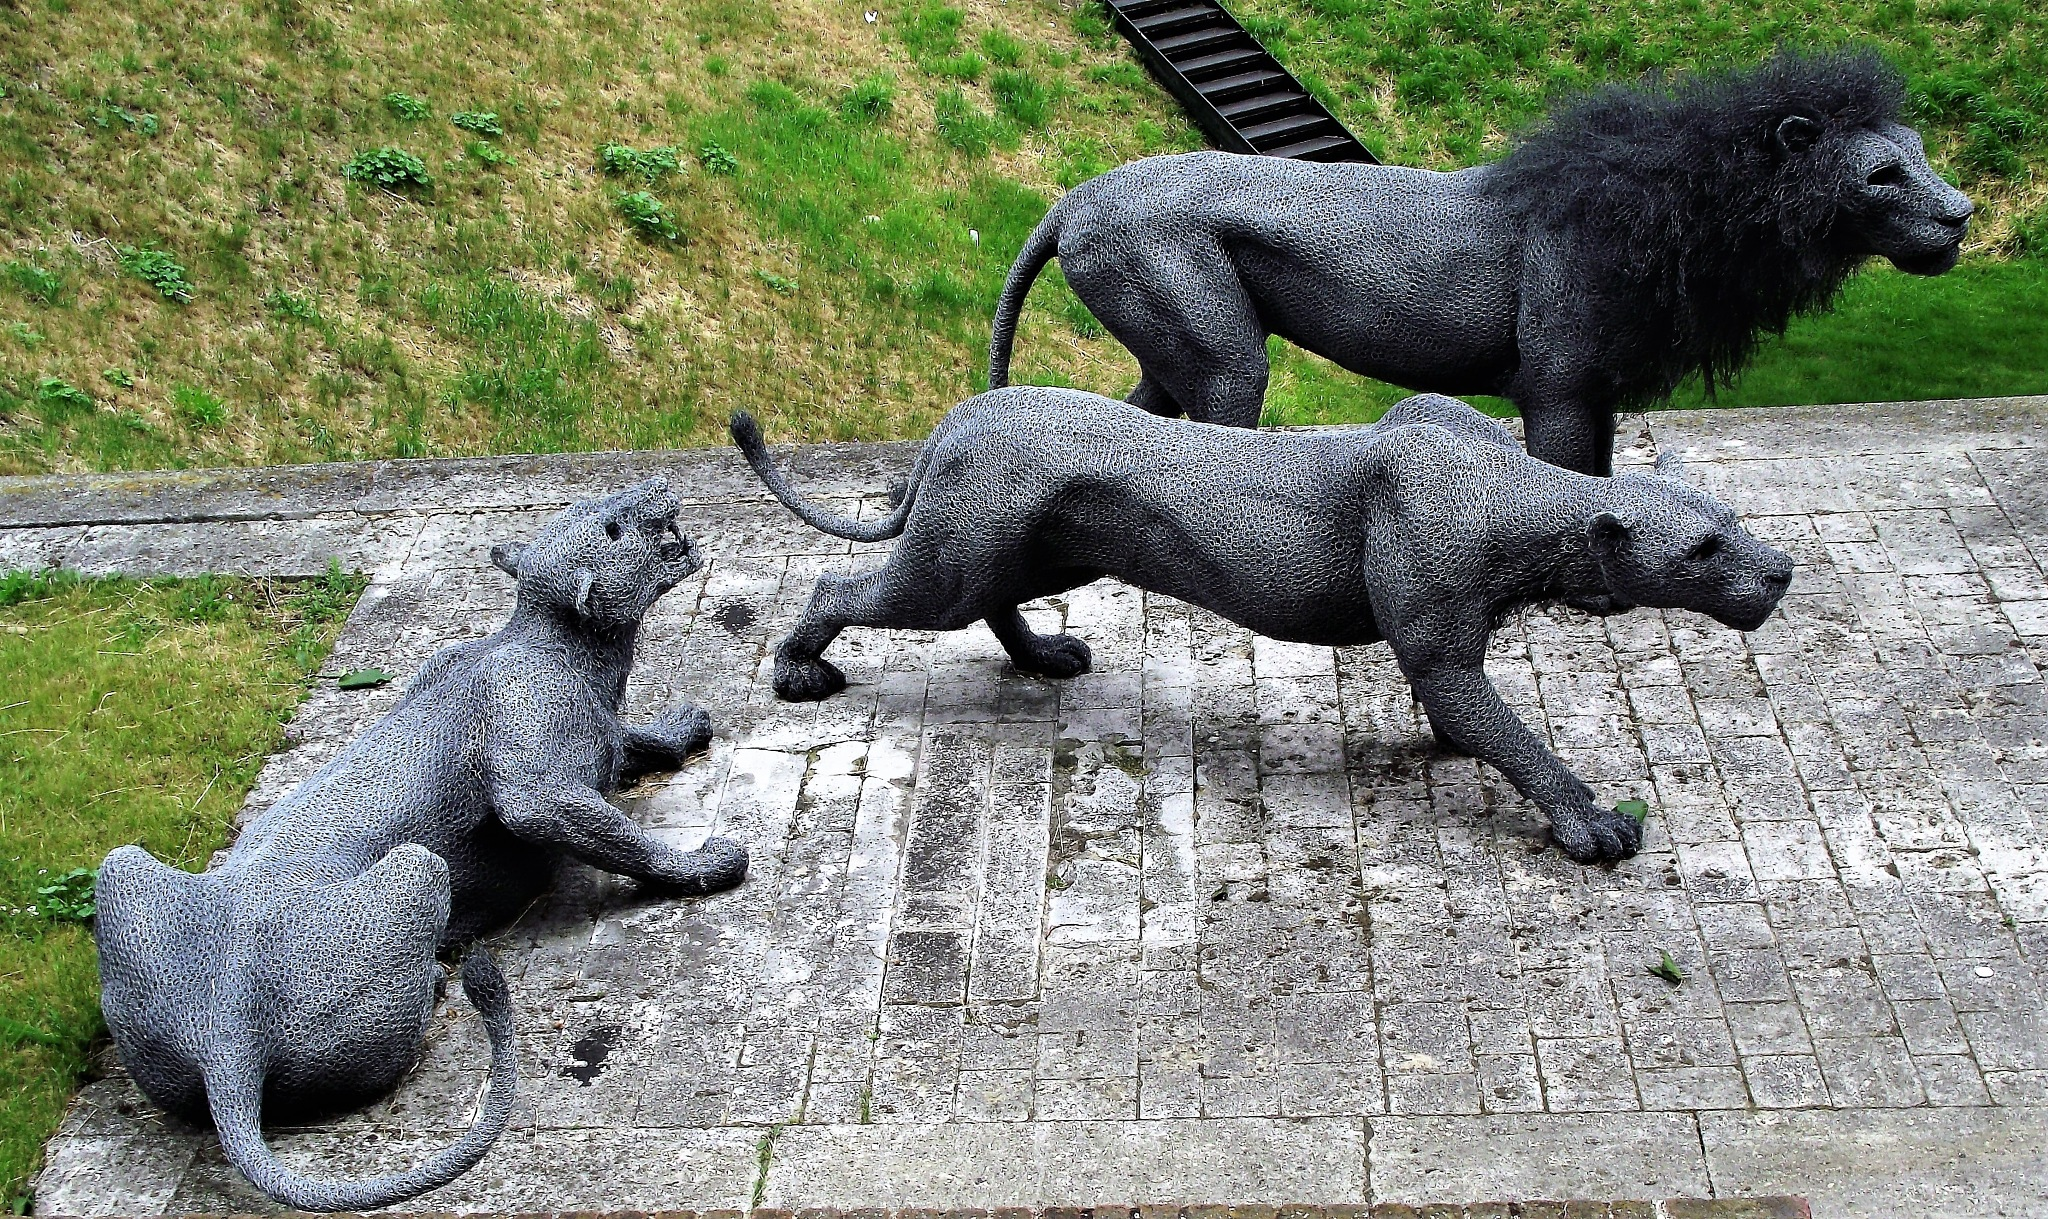 Iron Lions by Giulio